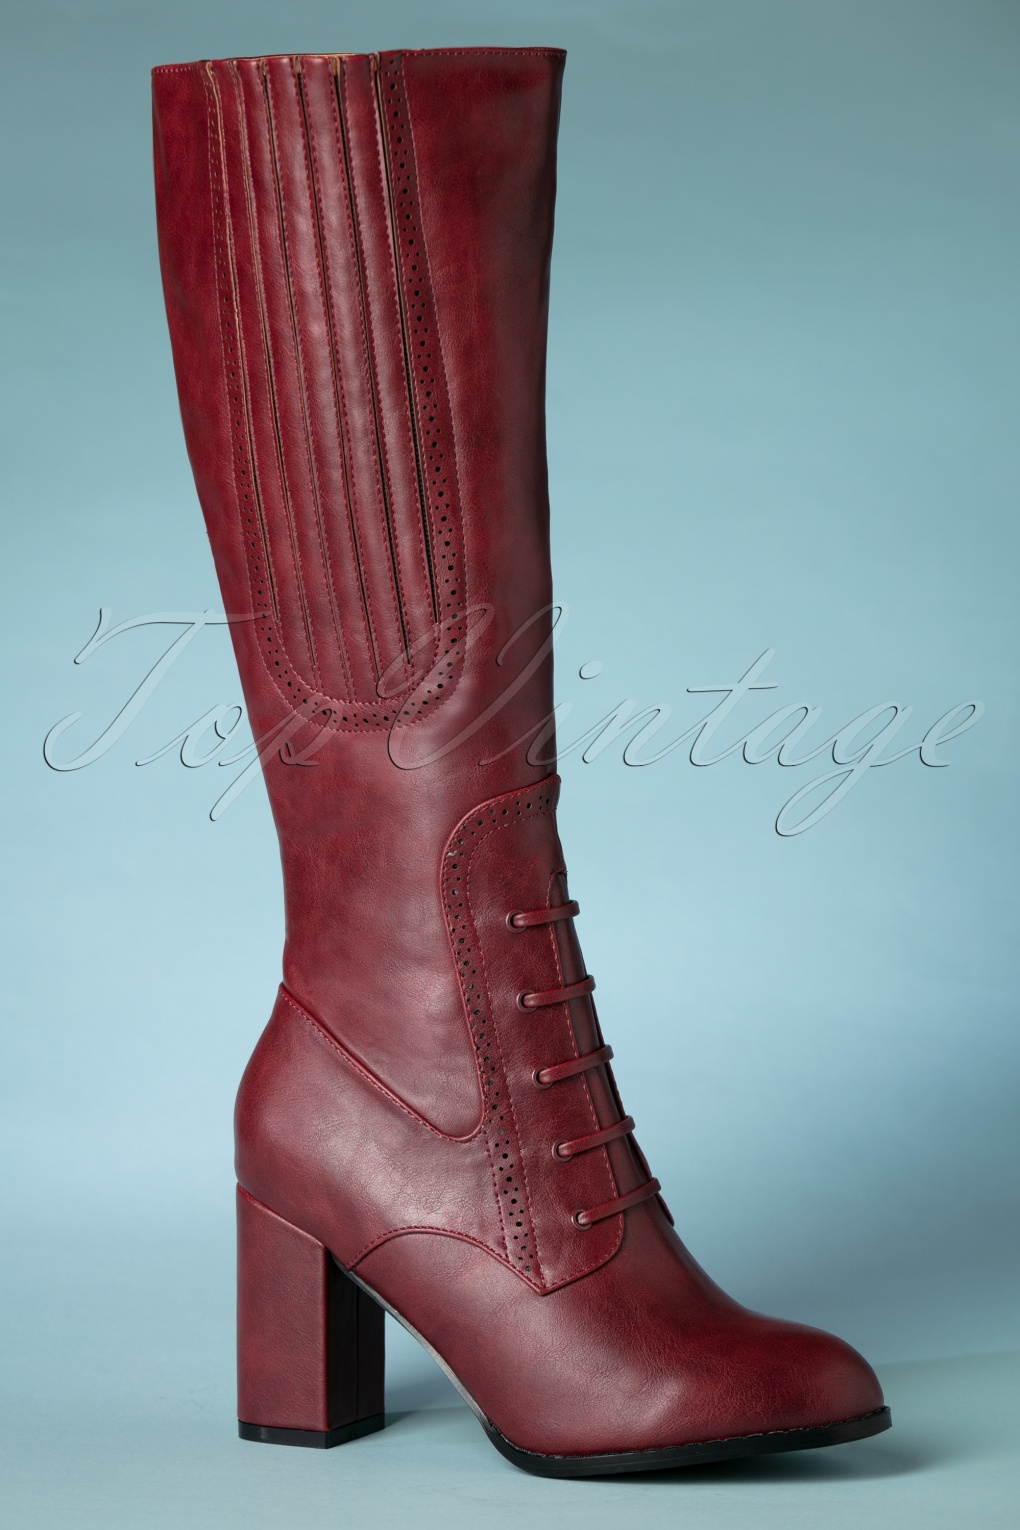 60s Shoes, Boots | 70s Shoes, Platforms, Boots 40s Roscoe Boots in Burgundy £90.33 AT vintagedancer.com